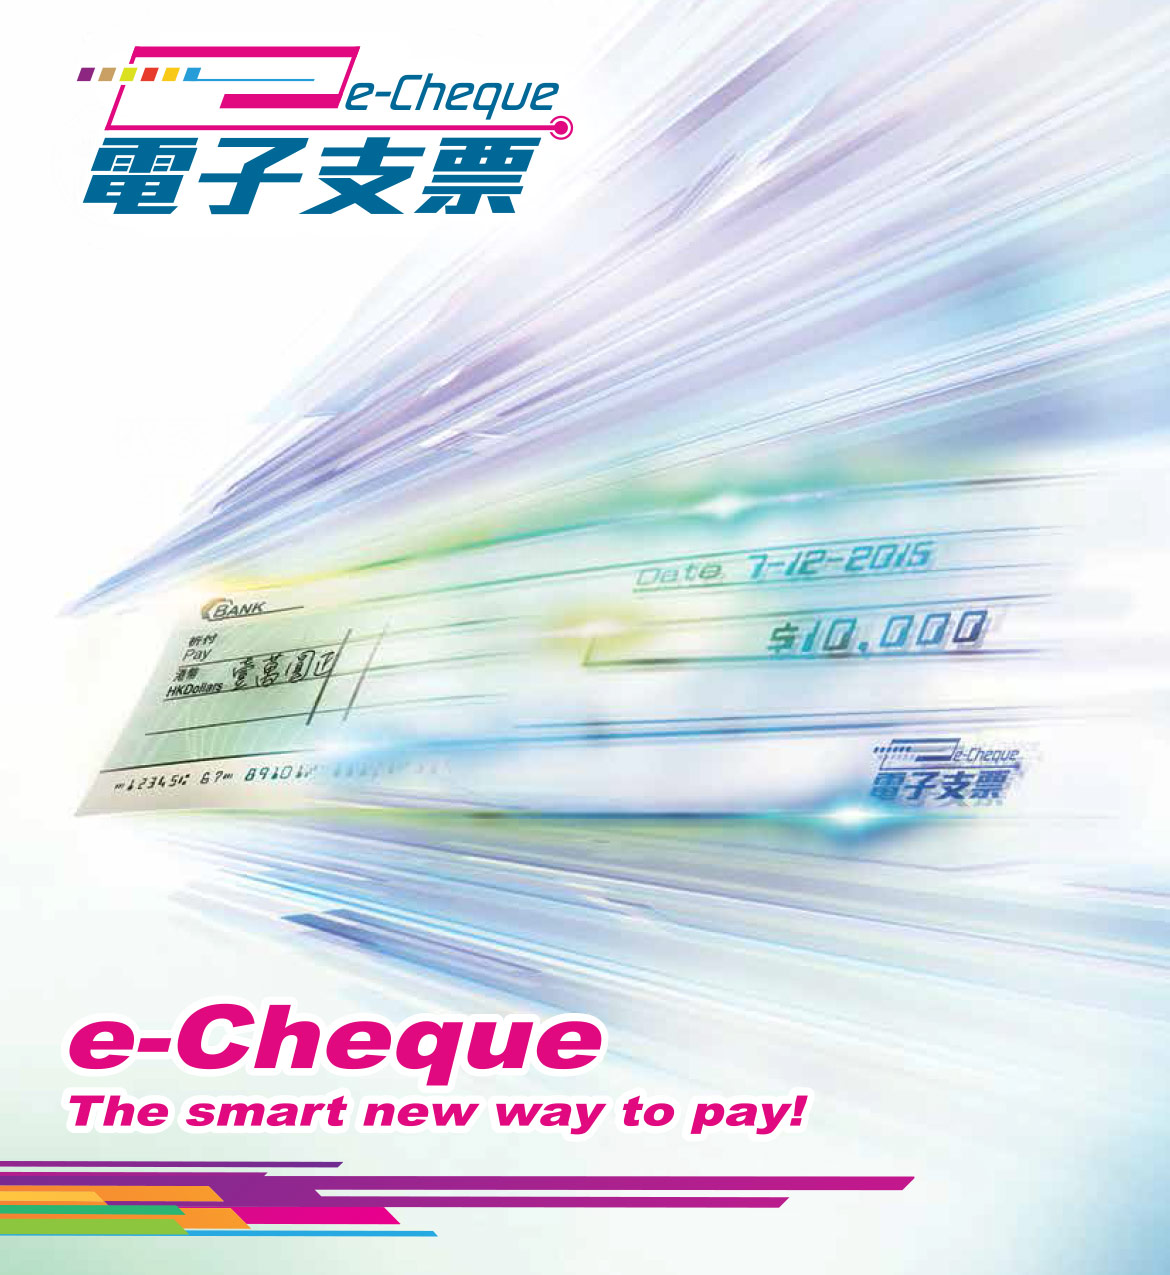 e-Brochure - e-Cheque